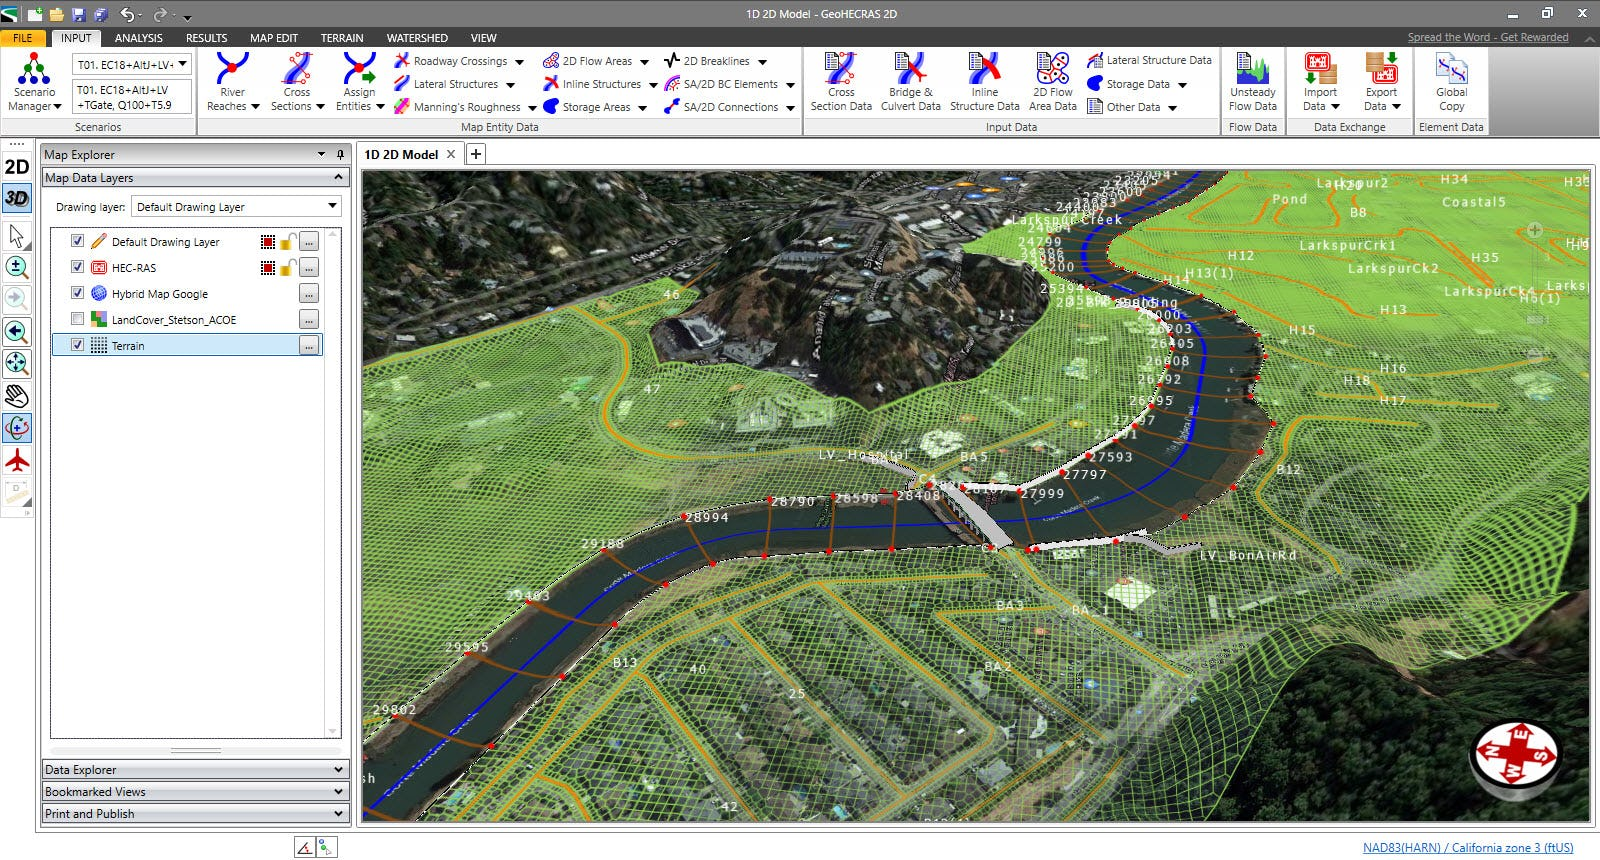 Quickly build 1D and 2D HEC-RAS models using the provided CAD/GIS tools.